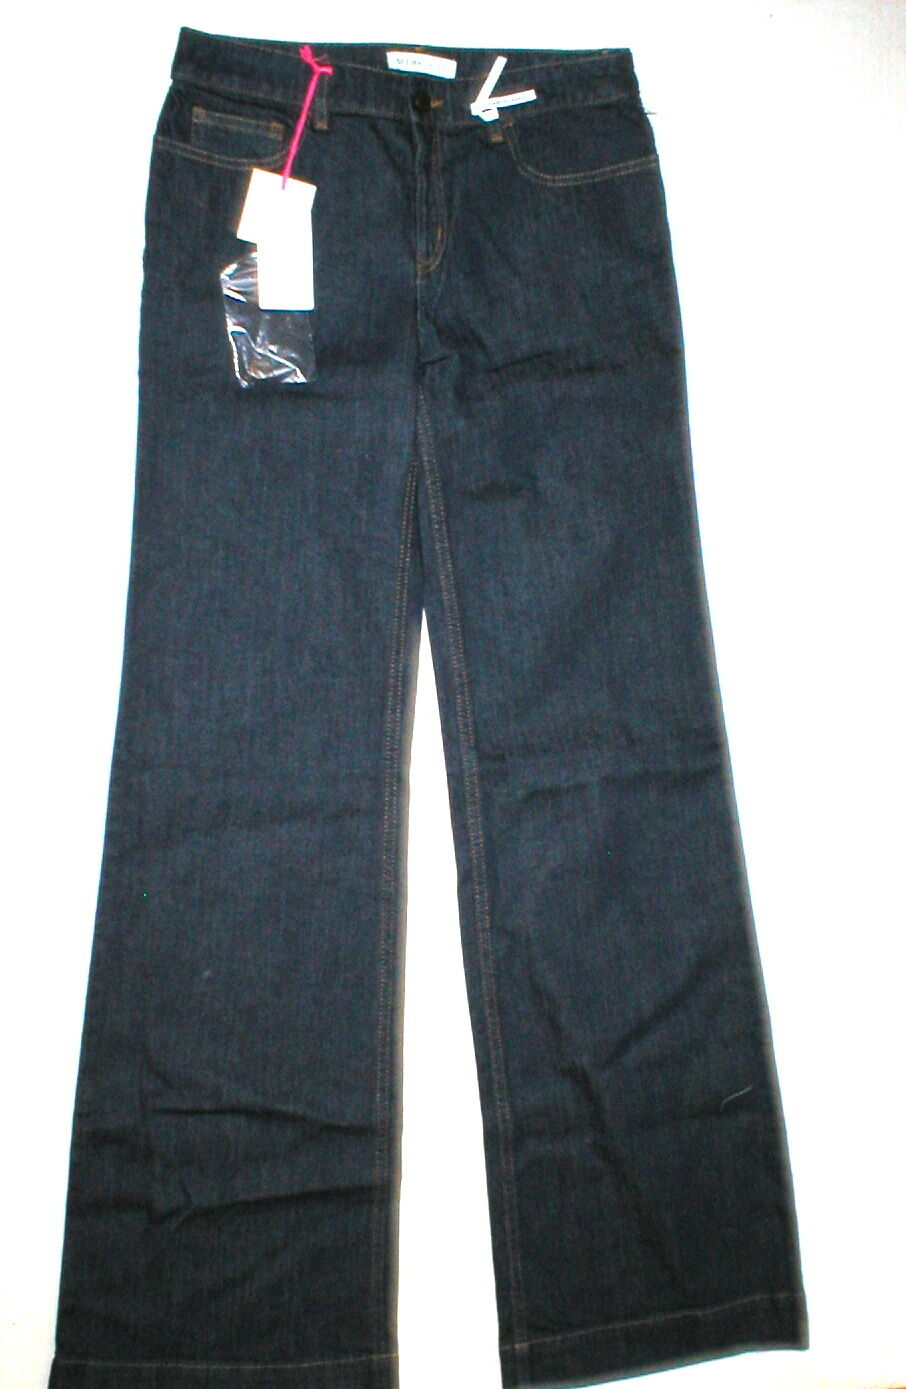 New Womens NWT Designer See by Chloe Jeans 27 Flare Jeans High Waist Dark Logo